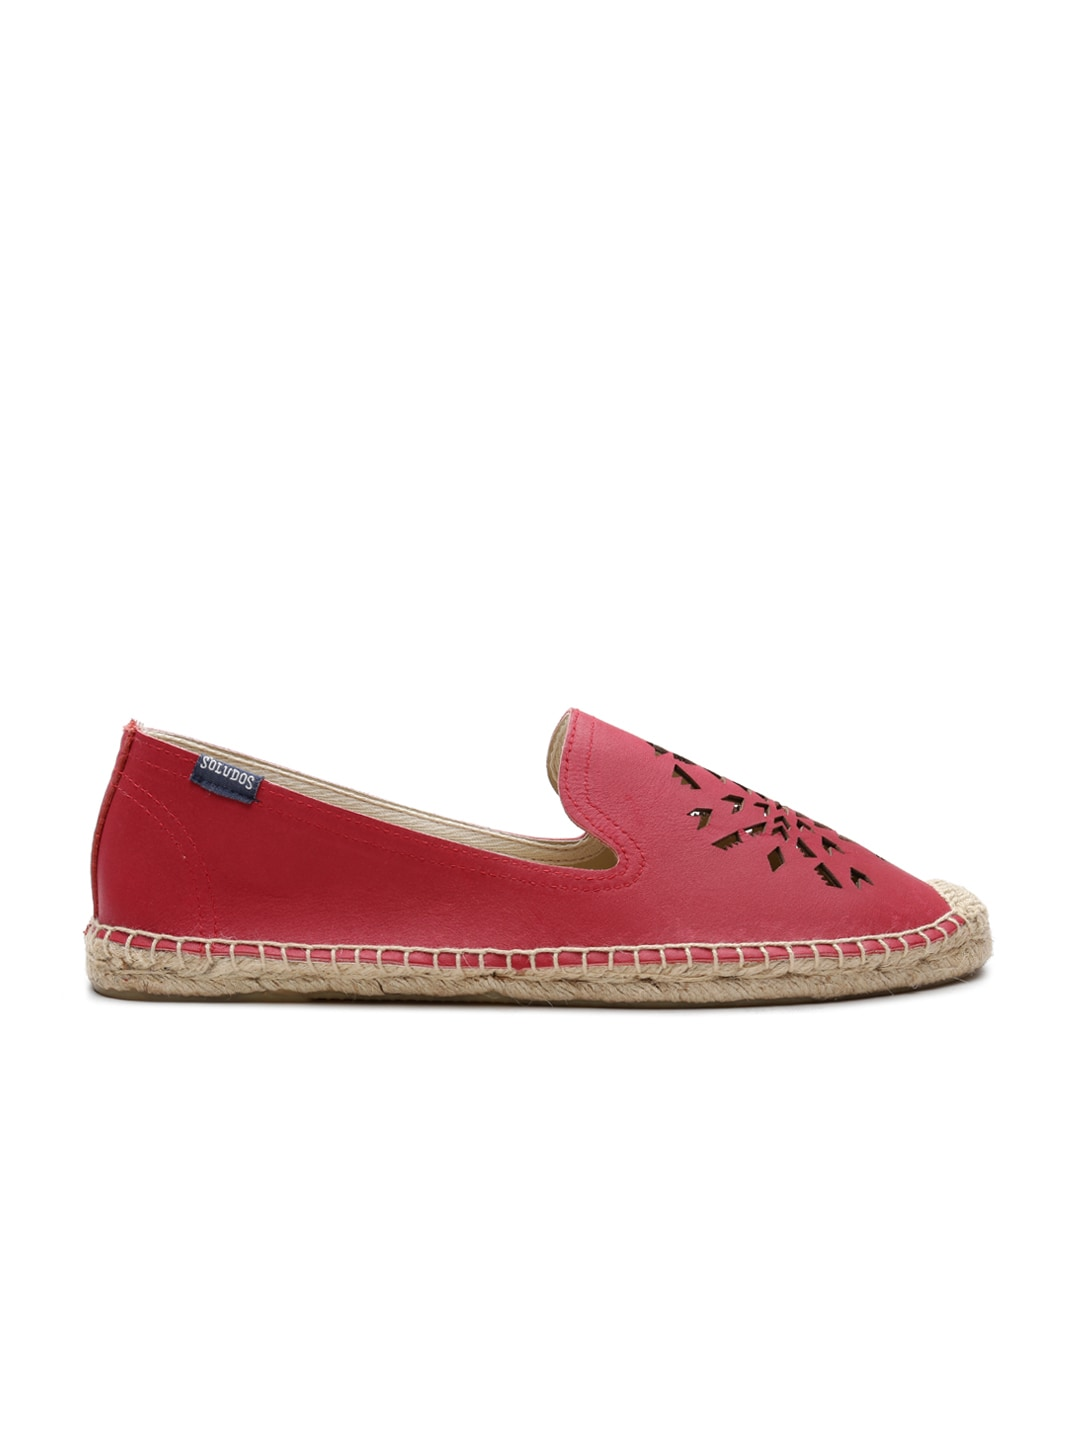 Soludos Women Red Leather Espadrilles